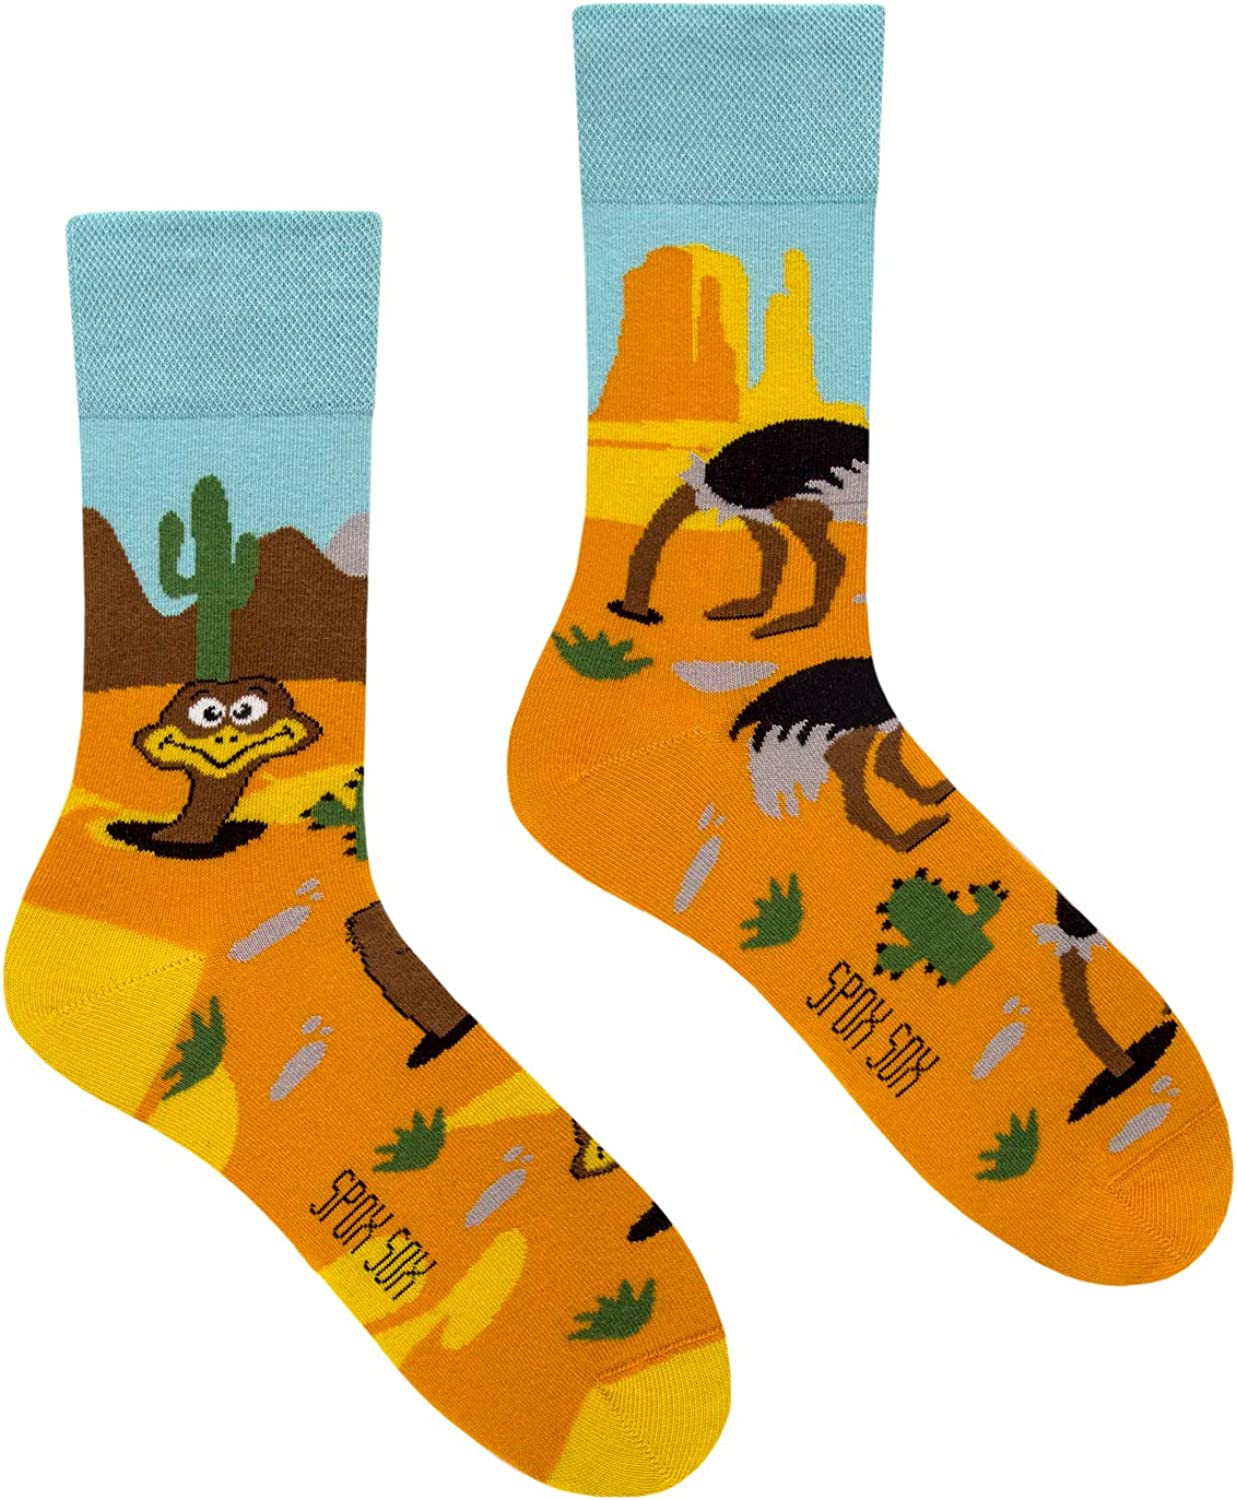 Spox Sox Casual Unisex - colourful novelty Bargain sale socks indiv High order funny for